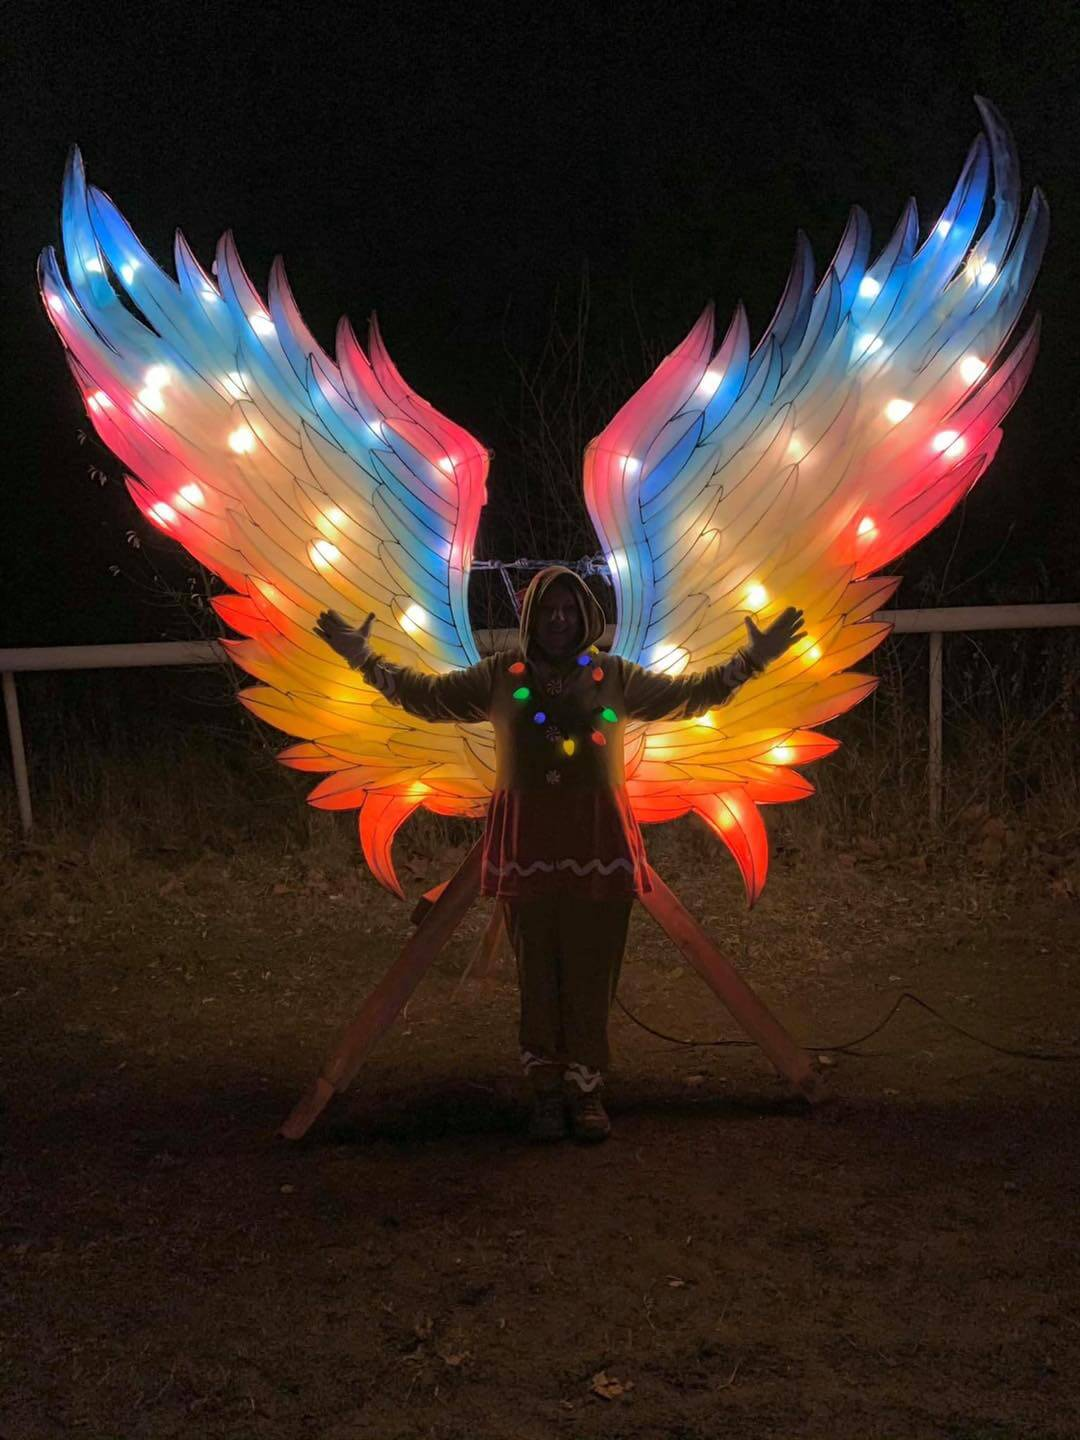 A woman standing in front of a pair of large, colorfully lit-up wings at night for a photo op